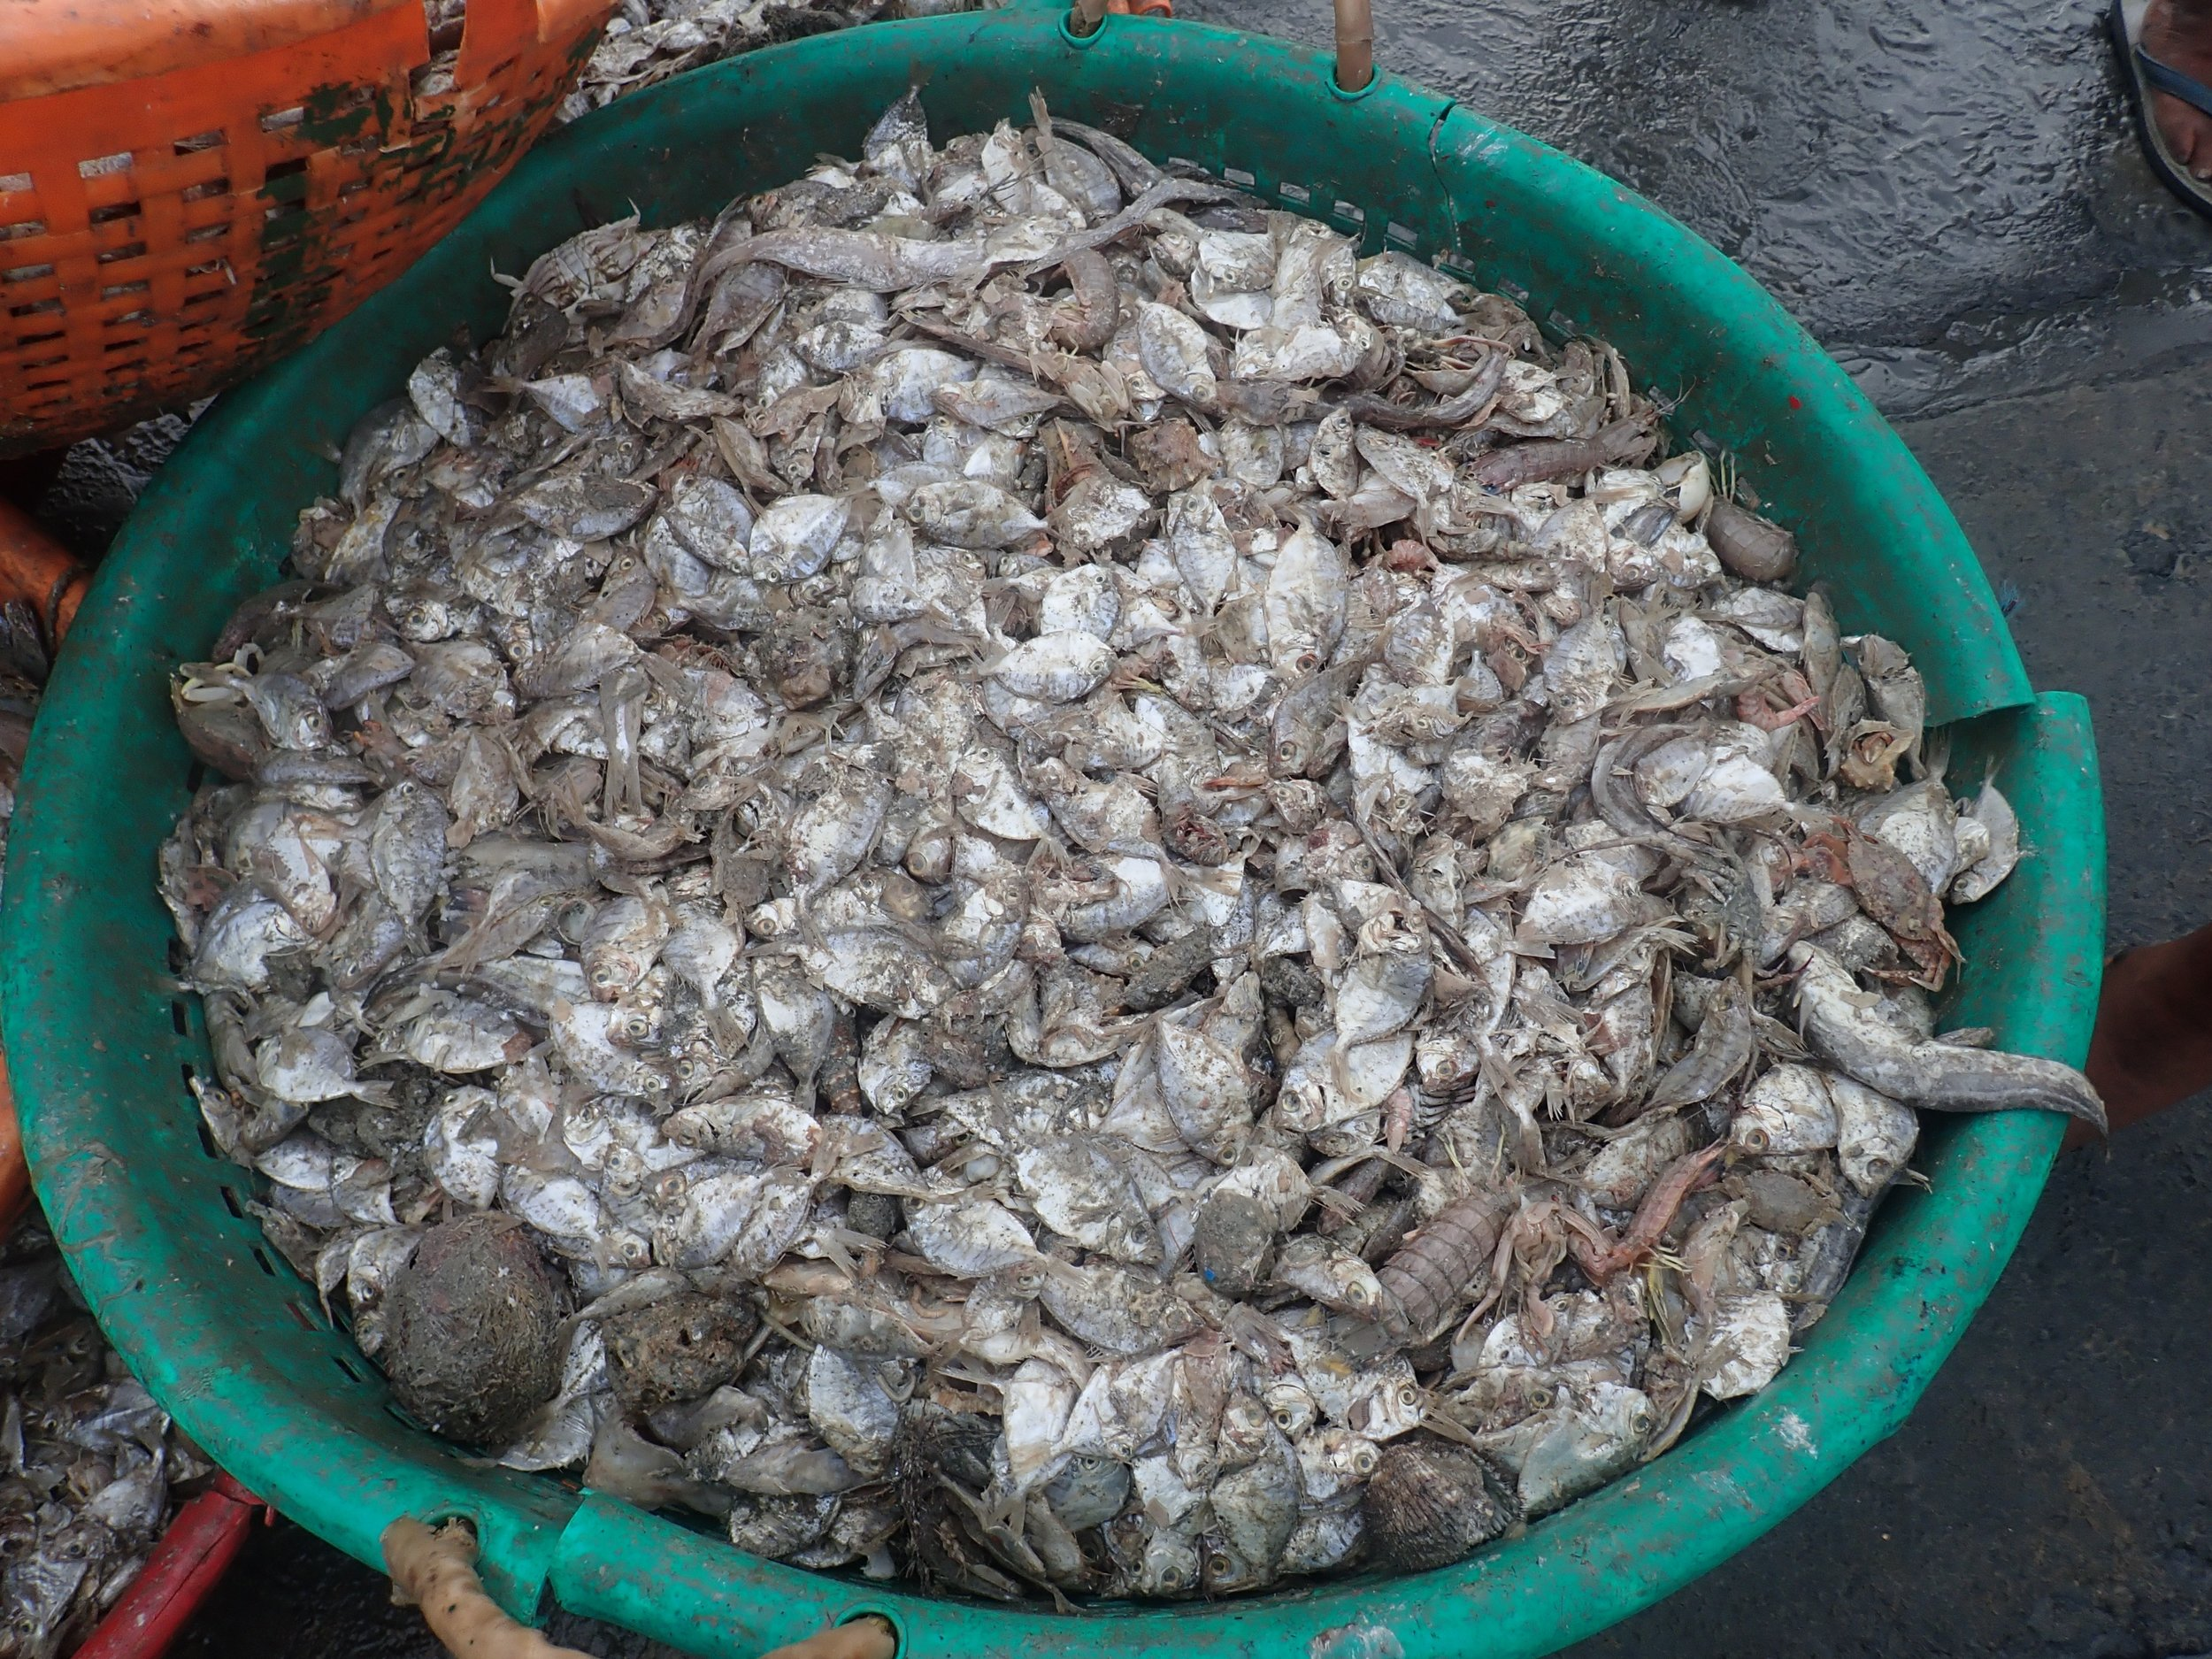 Mandapam south - baskets of miscellany (bycatch) destined for chicken feed.jpg